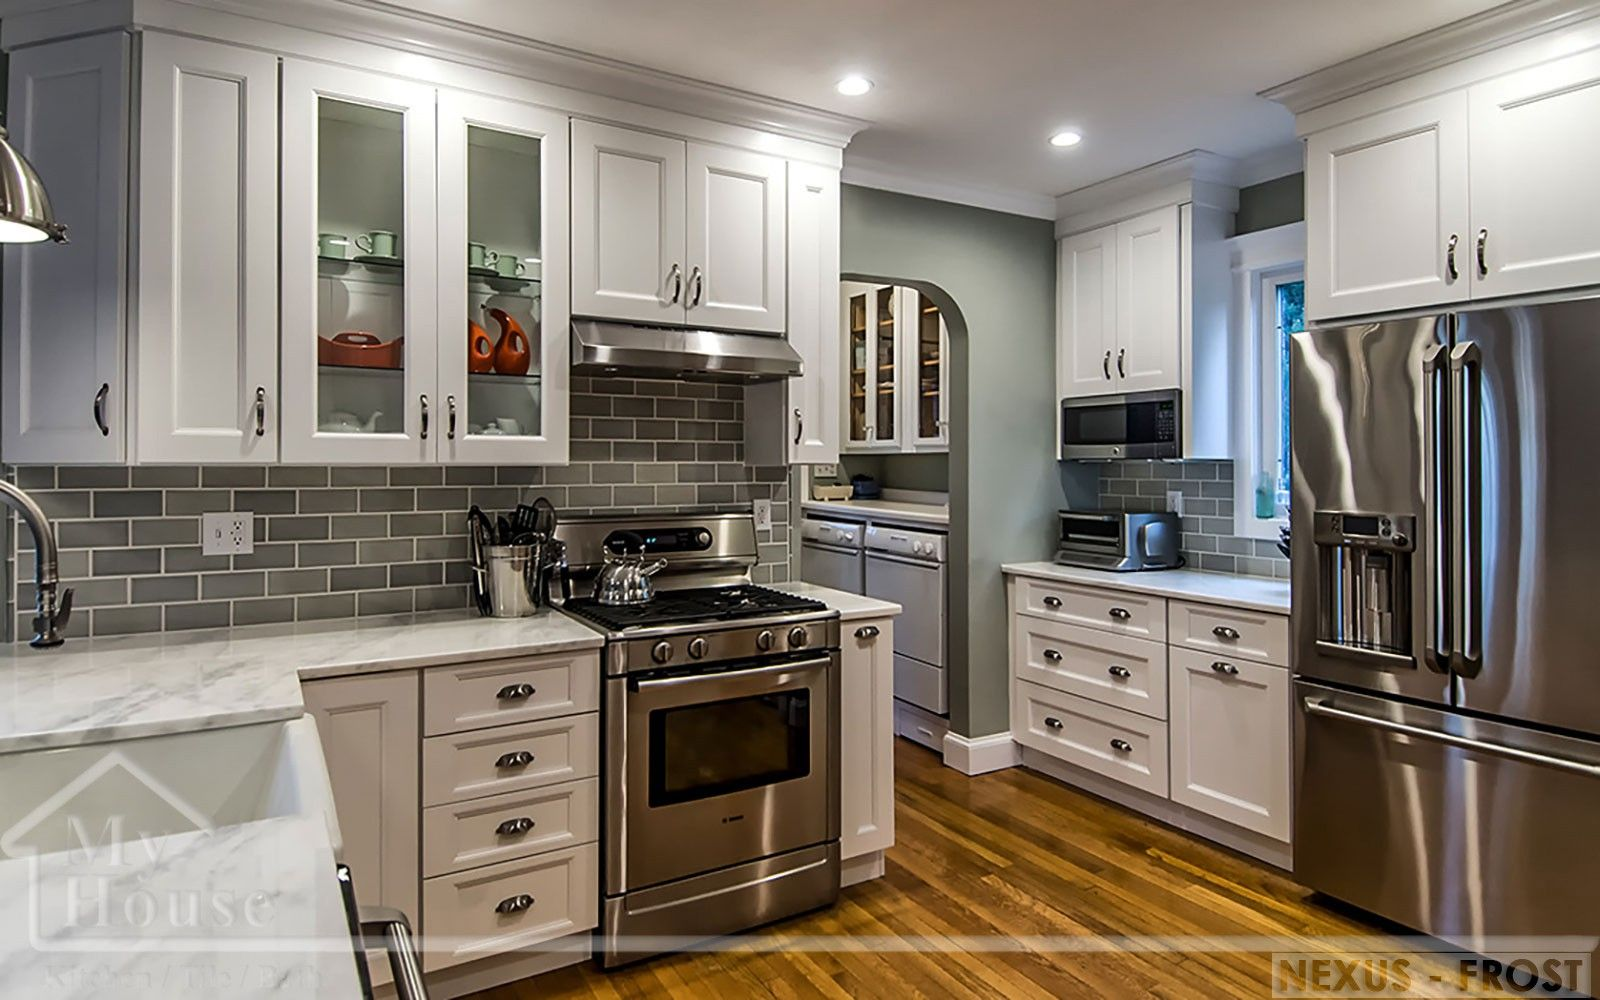 New Kitchen Cabinets Union Nj The Most Awesome As Well As Attractive Kitchen Cabinets Union Nj With Regard To Encourage Your Property Present House Warm Wish